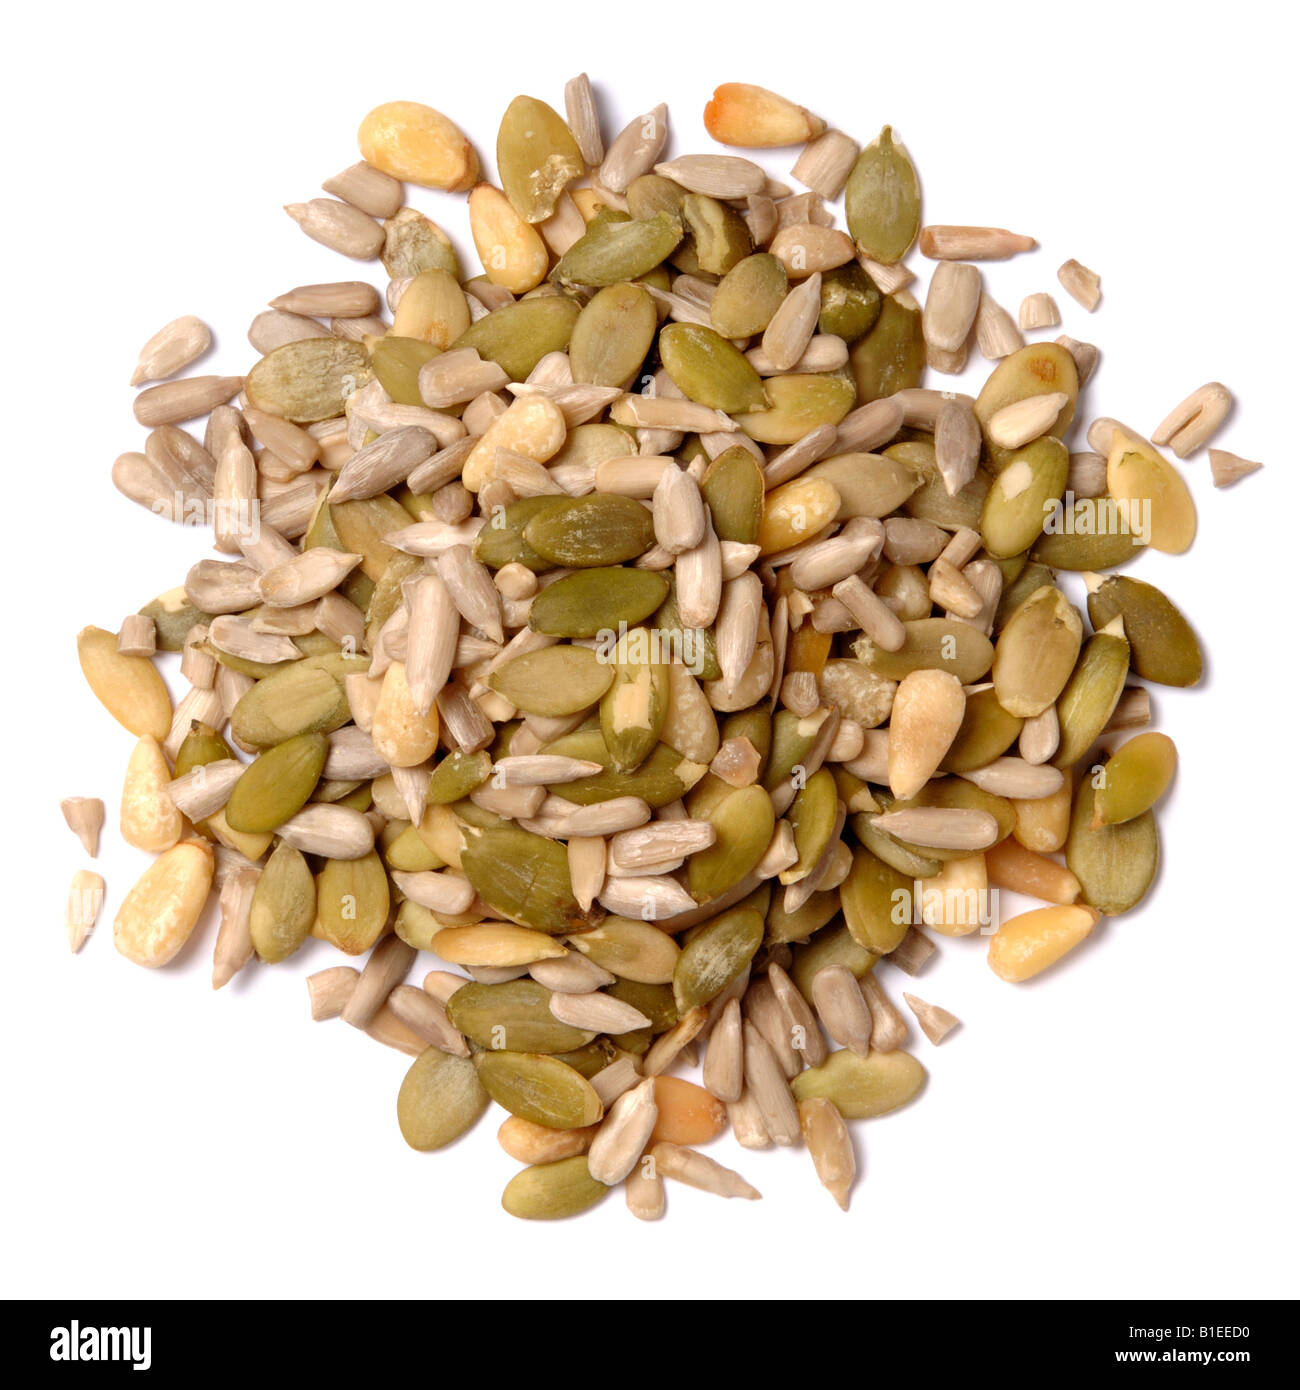 Seeds and nuts - Stock Image